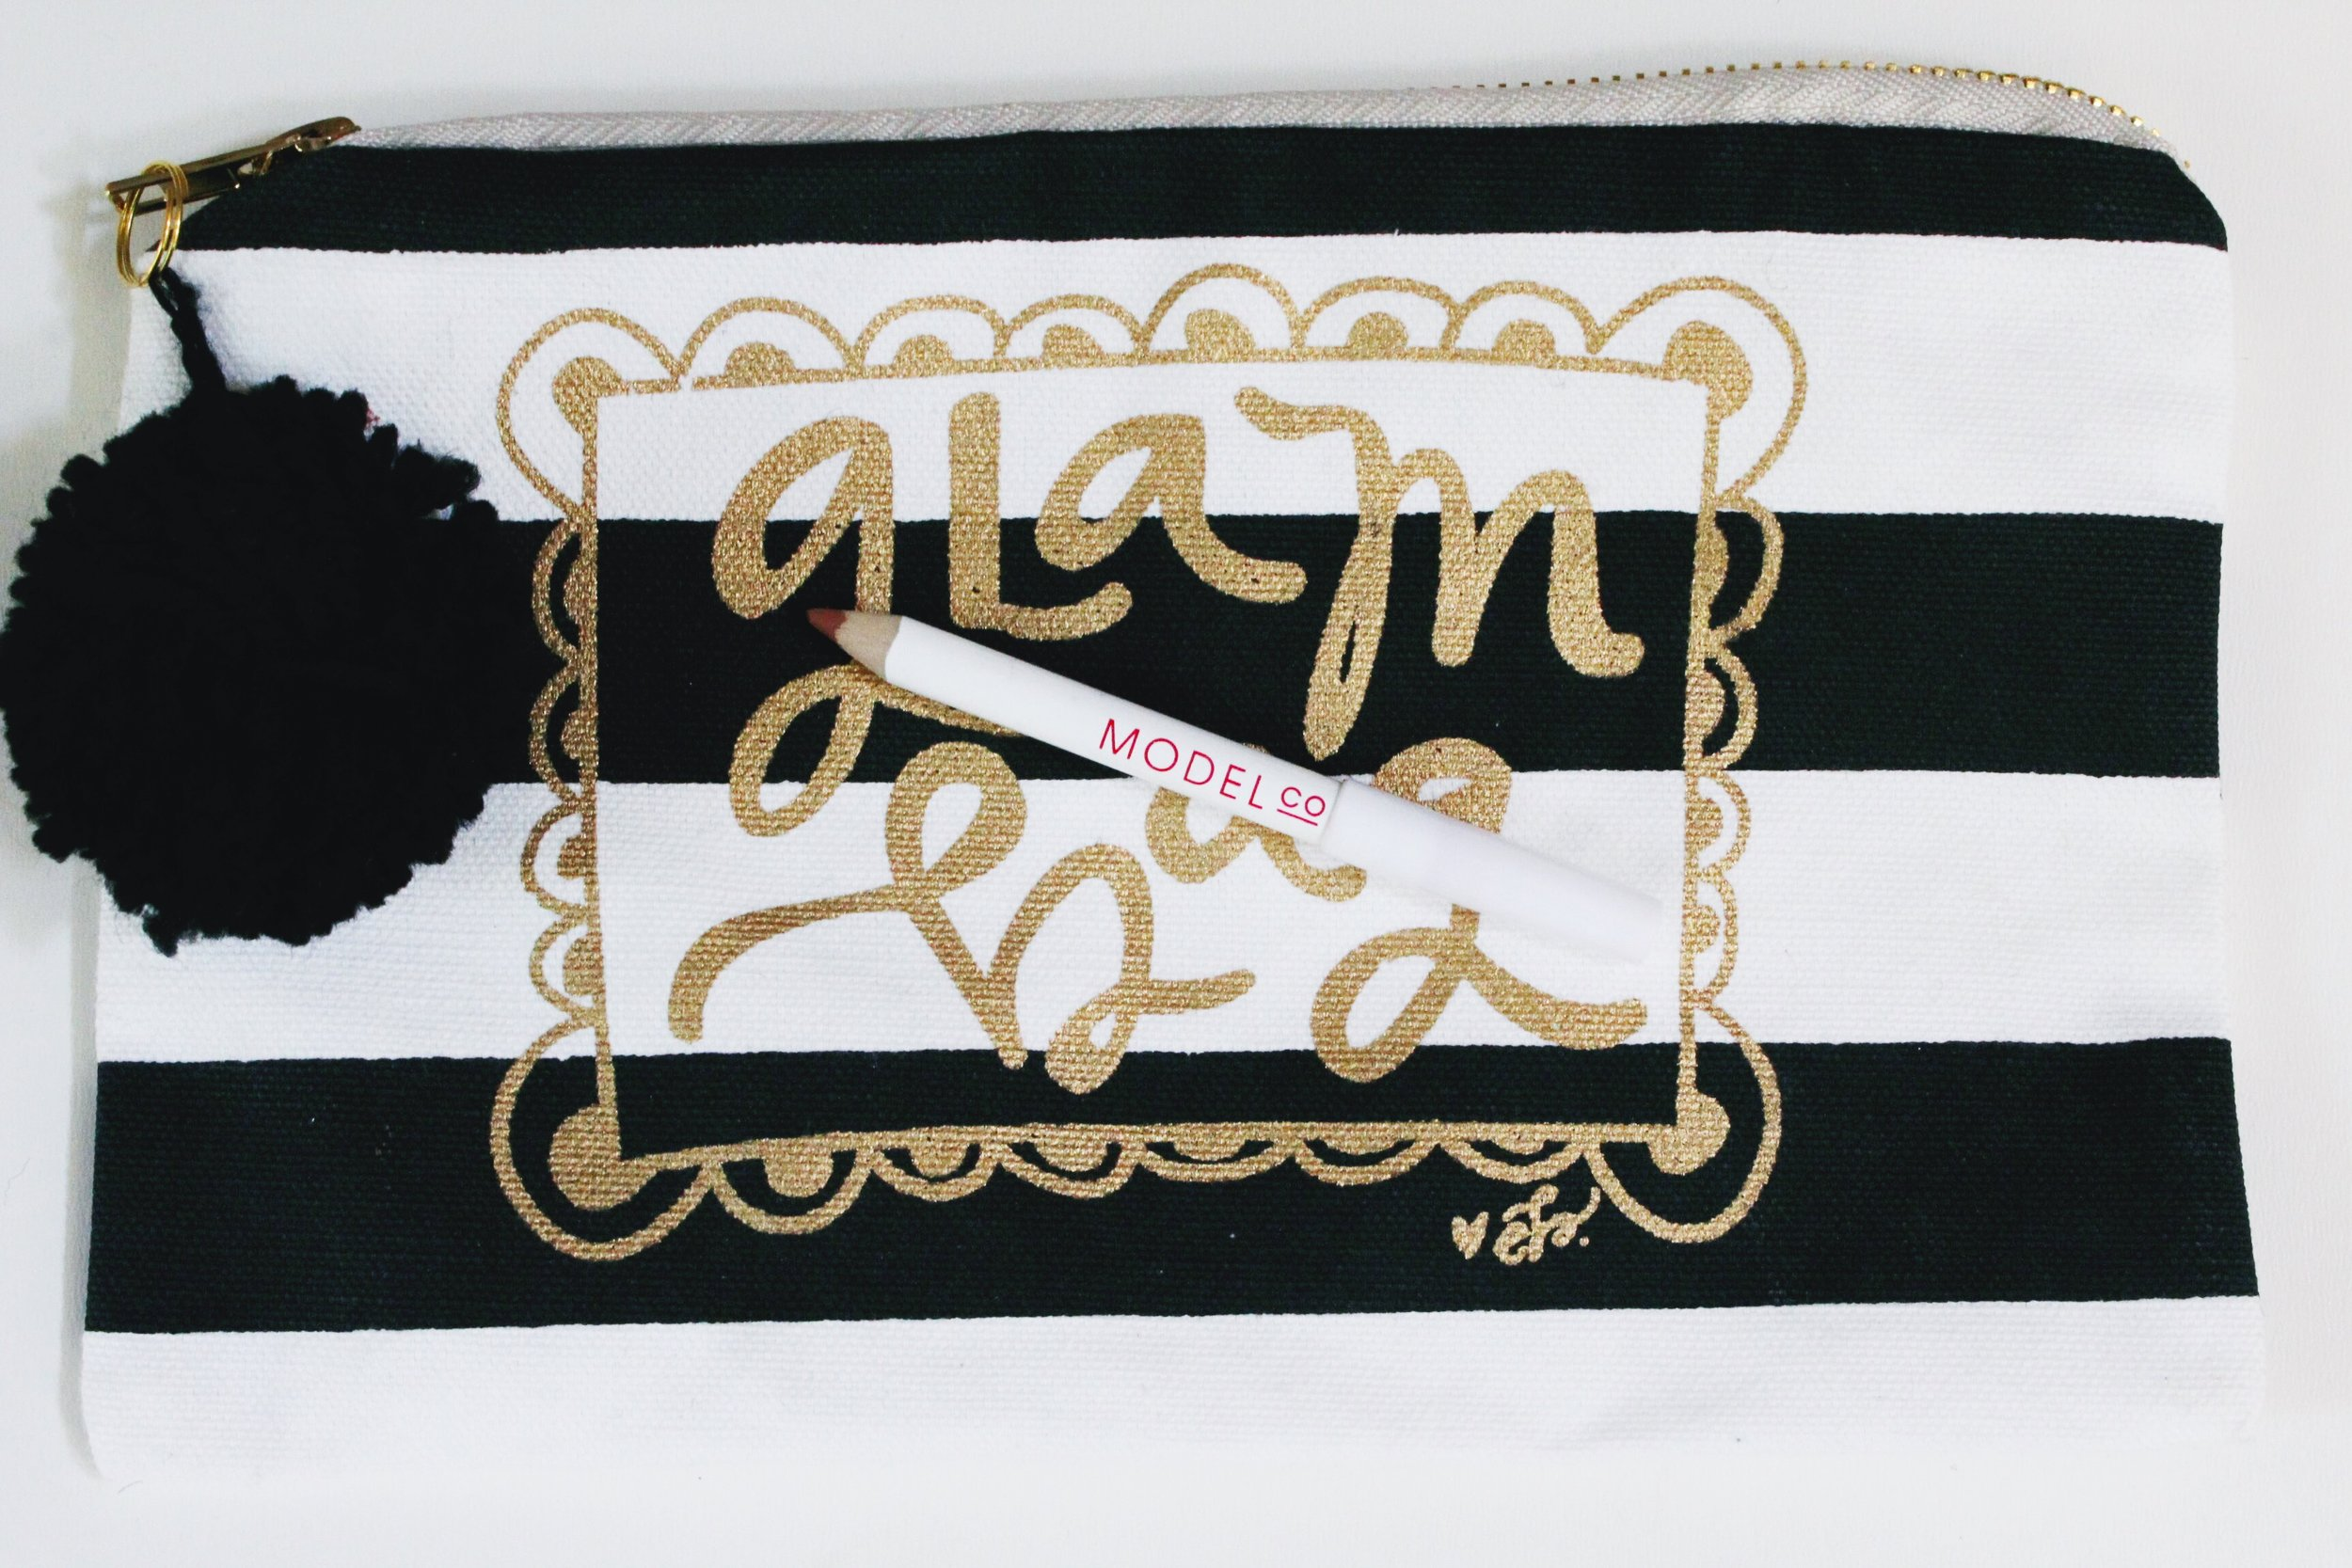 Black and White Striped Glam Bag with a zipper Pom pom and Model Co Lip enhancing lip liner